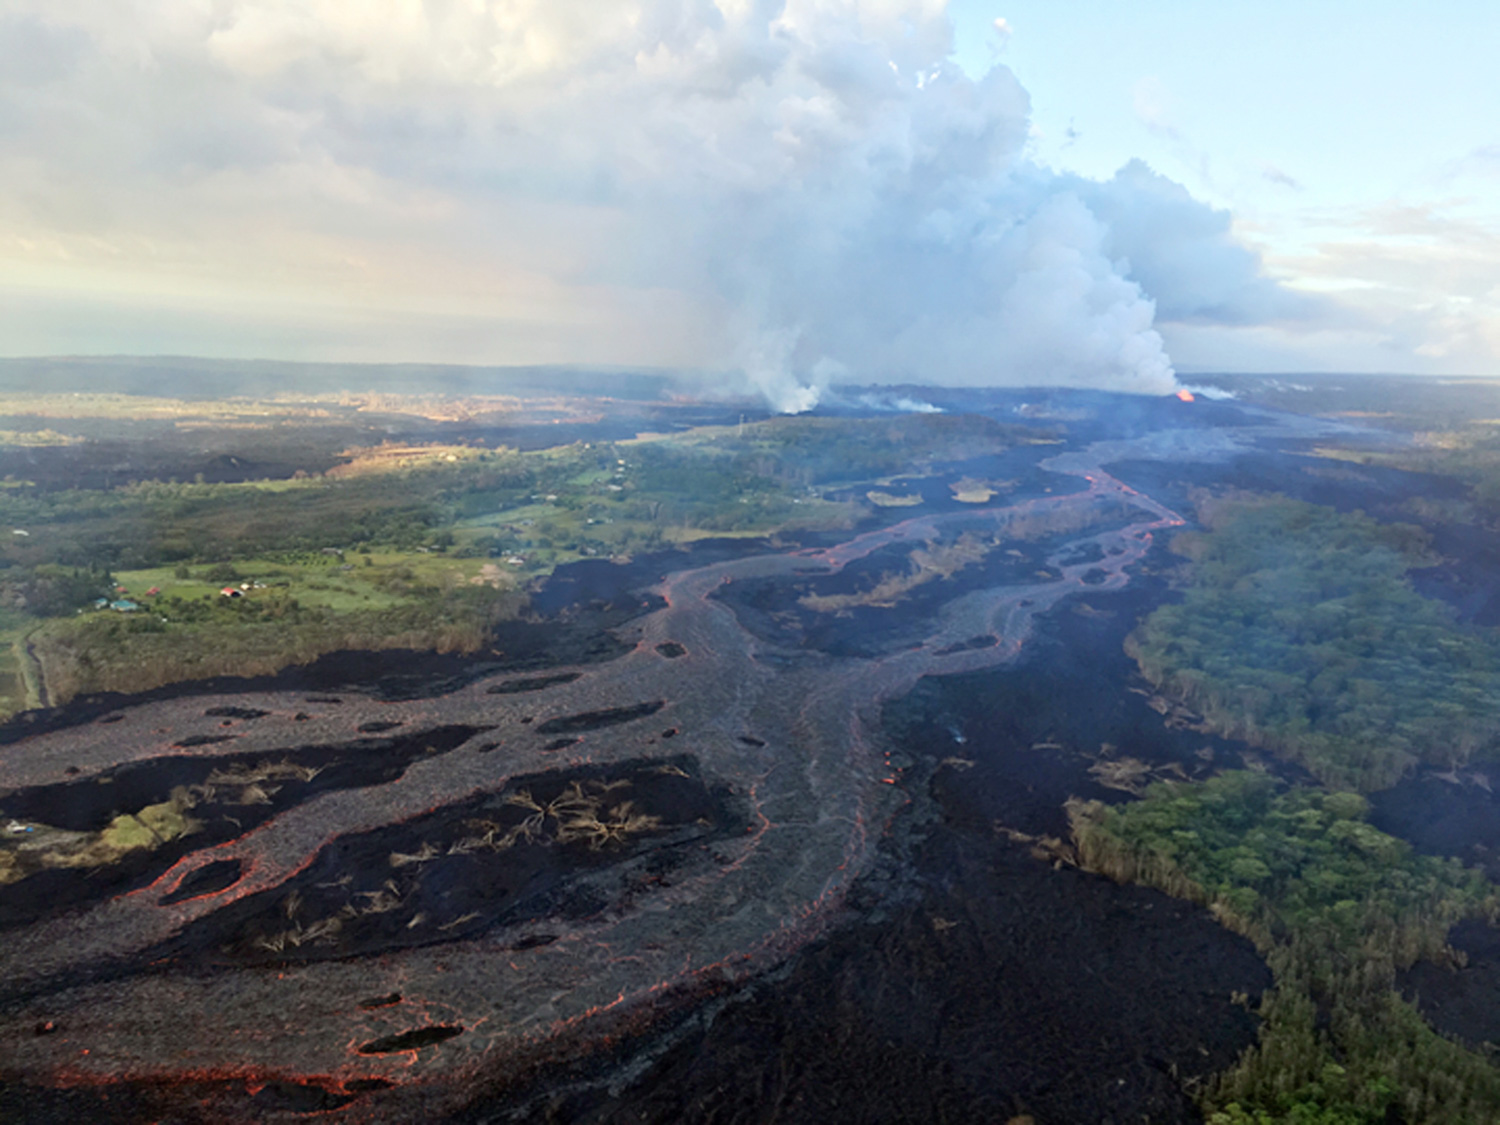 "<div class=""meta image-caption""><div class=""origin-logo origin-image none""><span>none</span></div><span class=""caption-text"">Kilauea's lower East Rift Zone, showing continued fountaining of a fissure and the lava flow channel fed by it near the town of Kapoho on the island of Hawaii. (U.S. Geological Survey via AP)</span></div>"